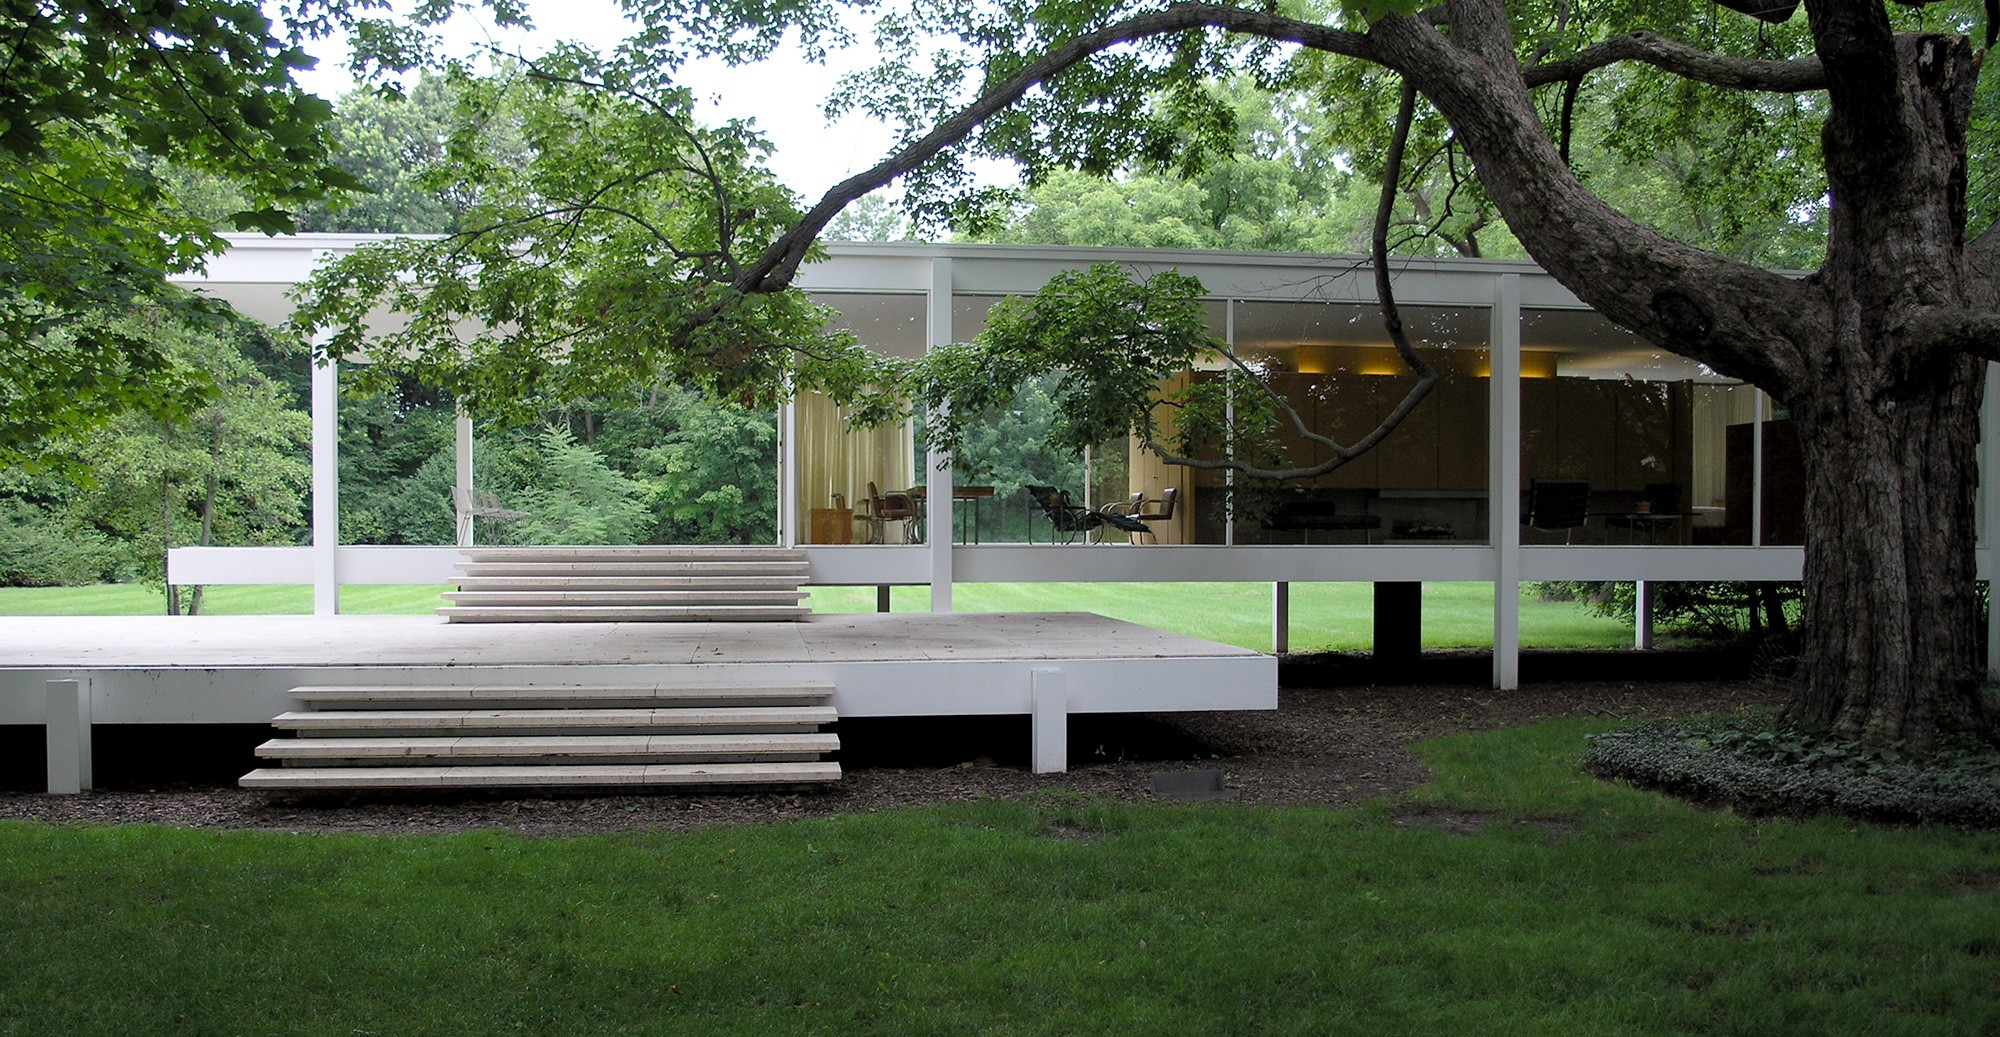 Farnsworth House by Bus  Tours  Chicago Architecture Center  CAC